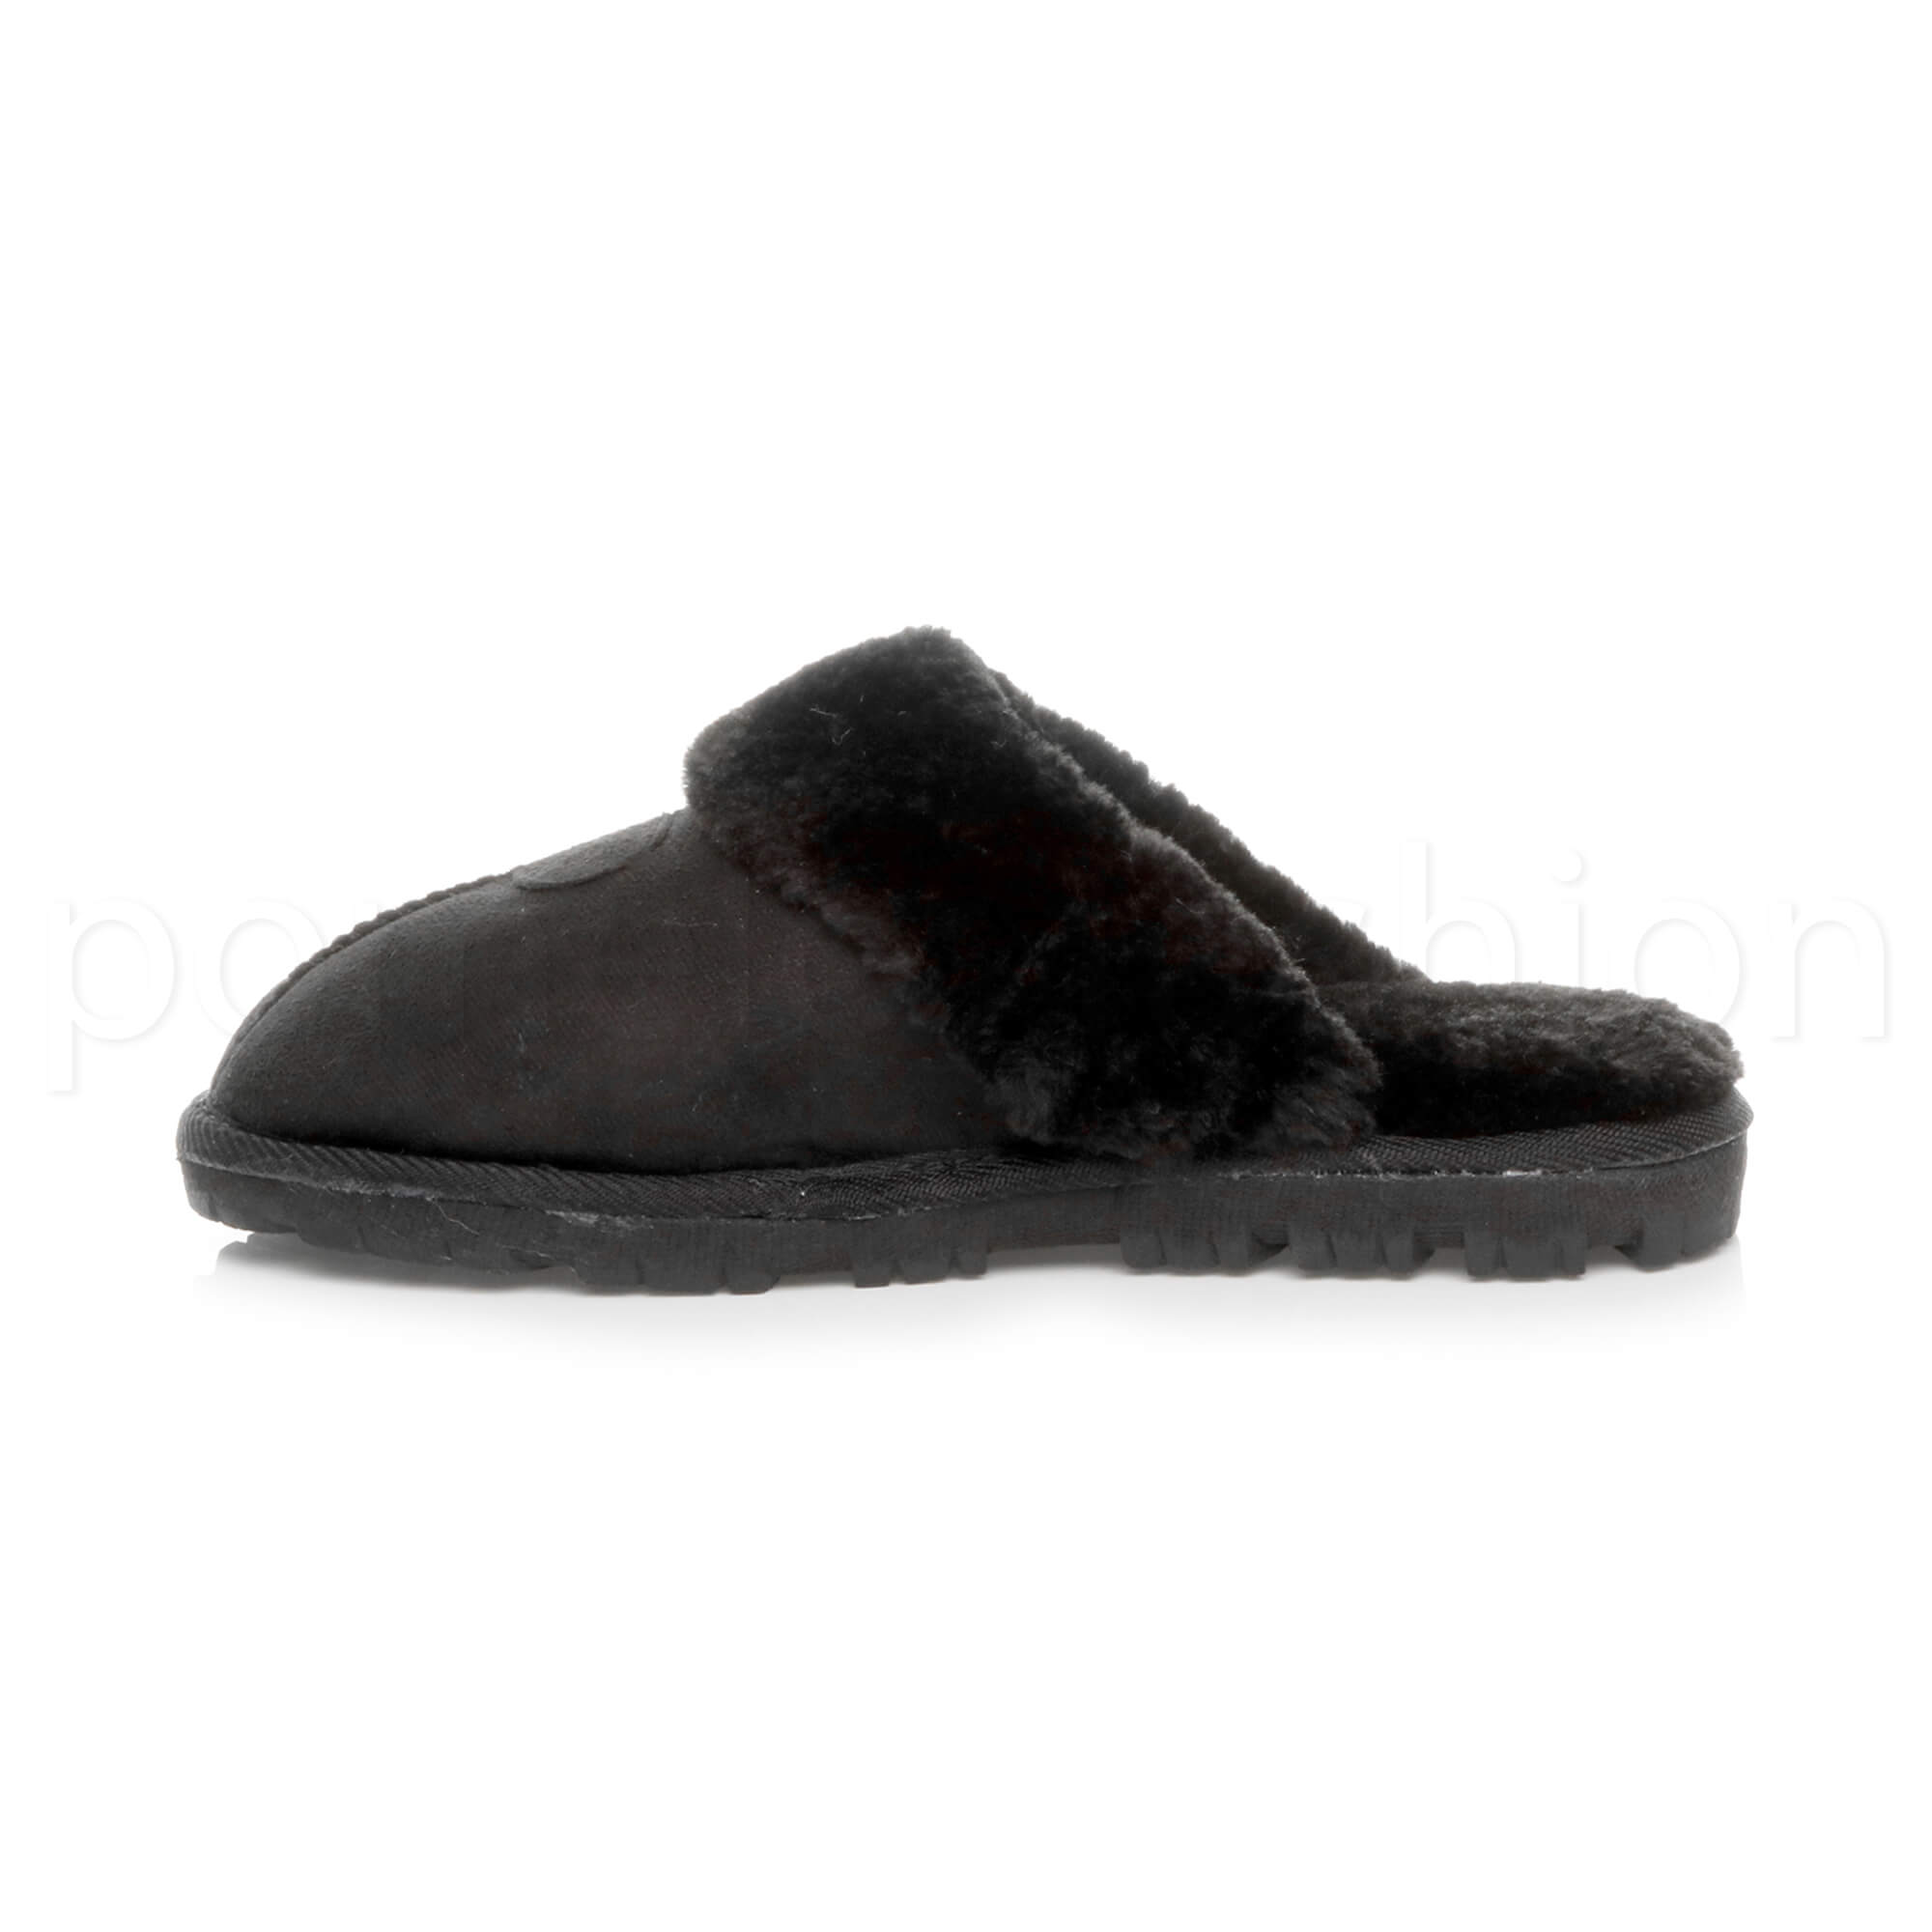 WOMENS-LADIES-FLAT-FUR-LINED-COMFORTABLE-WINTER-MULES-SLIPPERS-HOUSE-SHOES-SIZE thumbnail 18